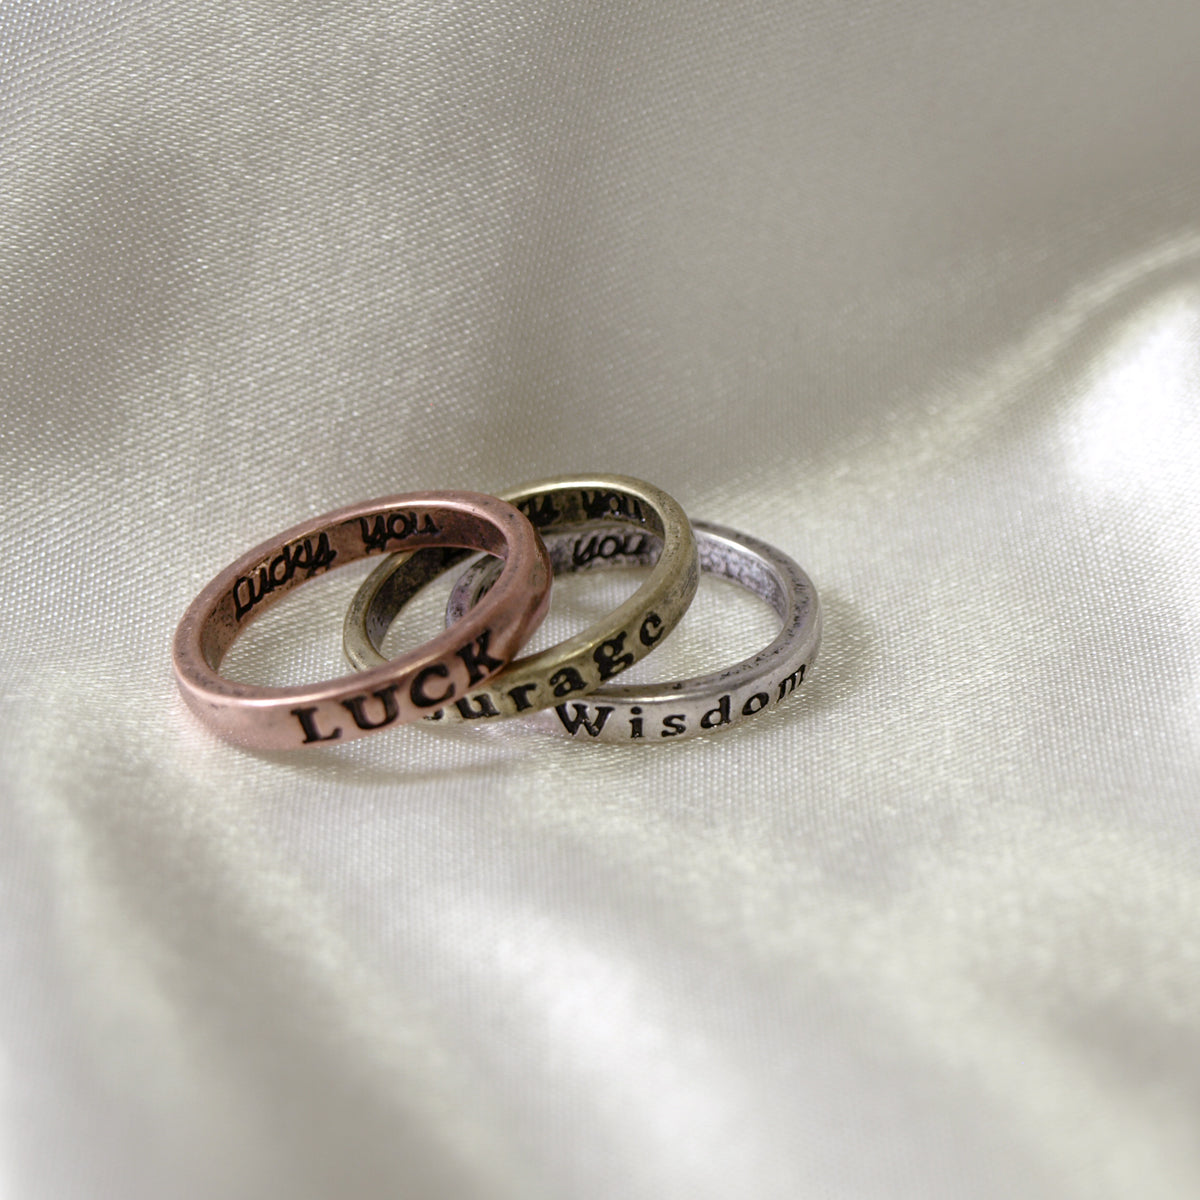 Inspirational Rings (Set of 3)